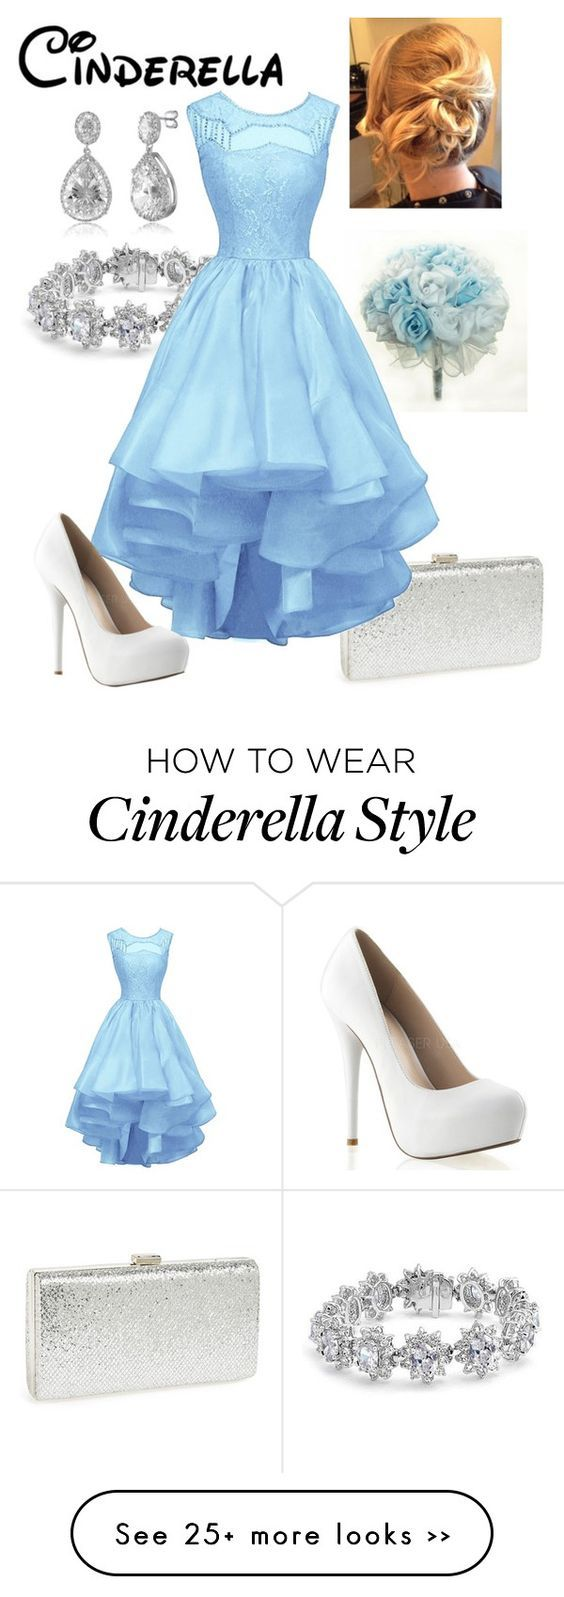 """""""Disney - Cinderella"""" by briony-jae on Polyvore featuring Natasha Couture, Bling Jewelry and BERRICLE:"""